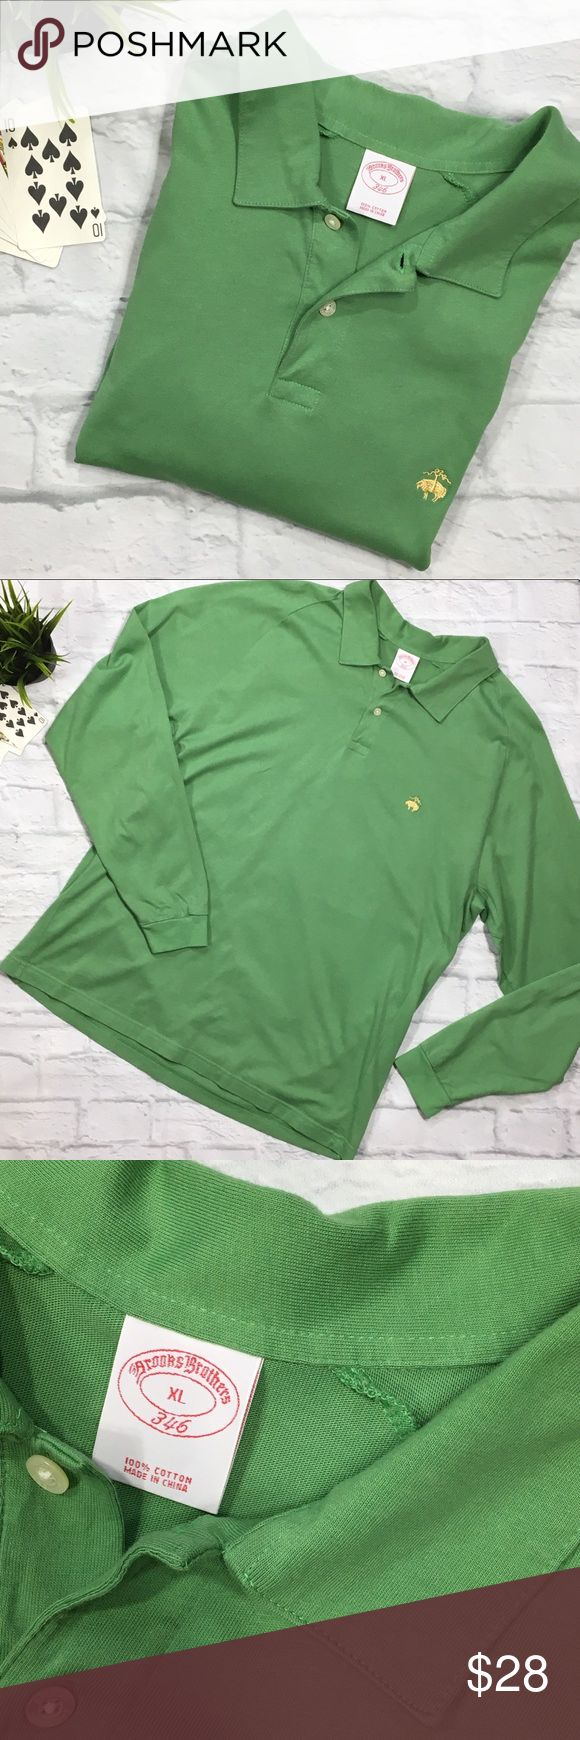 "BROOKS BROTHERS Long Sleeve Polo XL BROOKS BROTHERS 346 (J13) Men's Long Sleeve Polo Shirt Mossy Green 100% Cotton 2 Buttons at Neck  Men's SZ XL Measurements Laying Flat Under Arm to Under Arm 24"" Length 28.5"" Sleeve Length Shoulder to Cuff 31.5"" Brooks Brothers Shirts Polos"